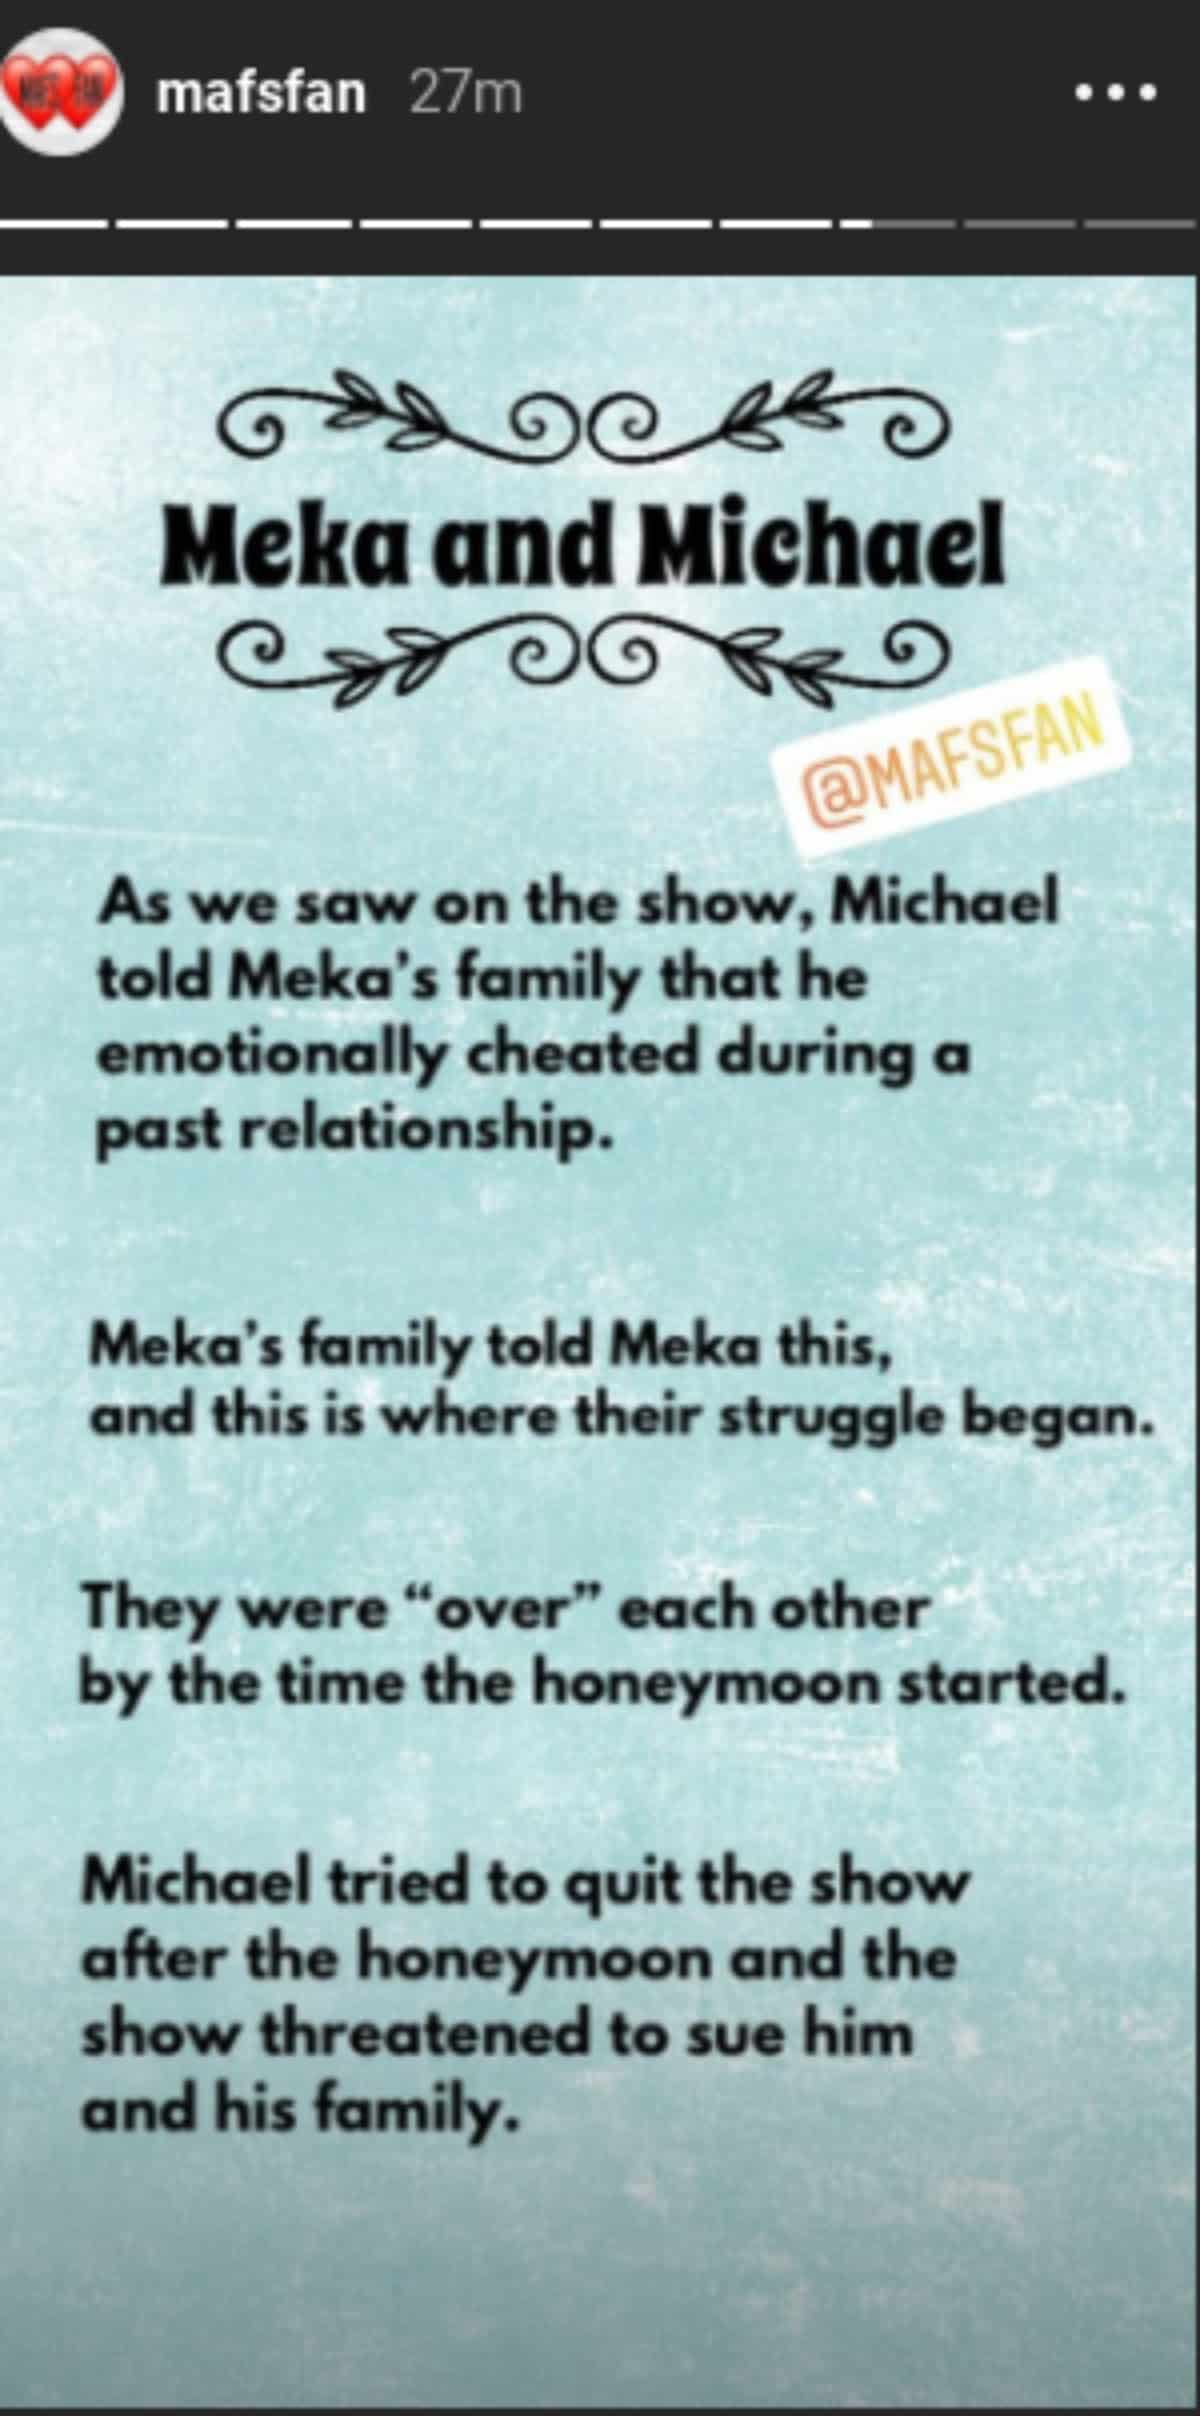 Michael and Meka spoilers shared by Mafsfan on Instagram